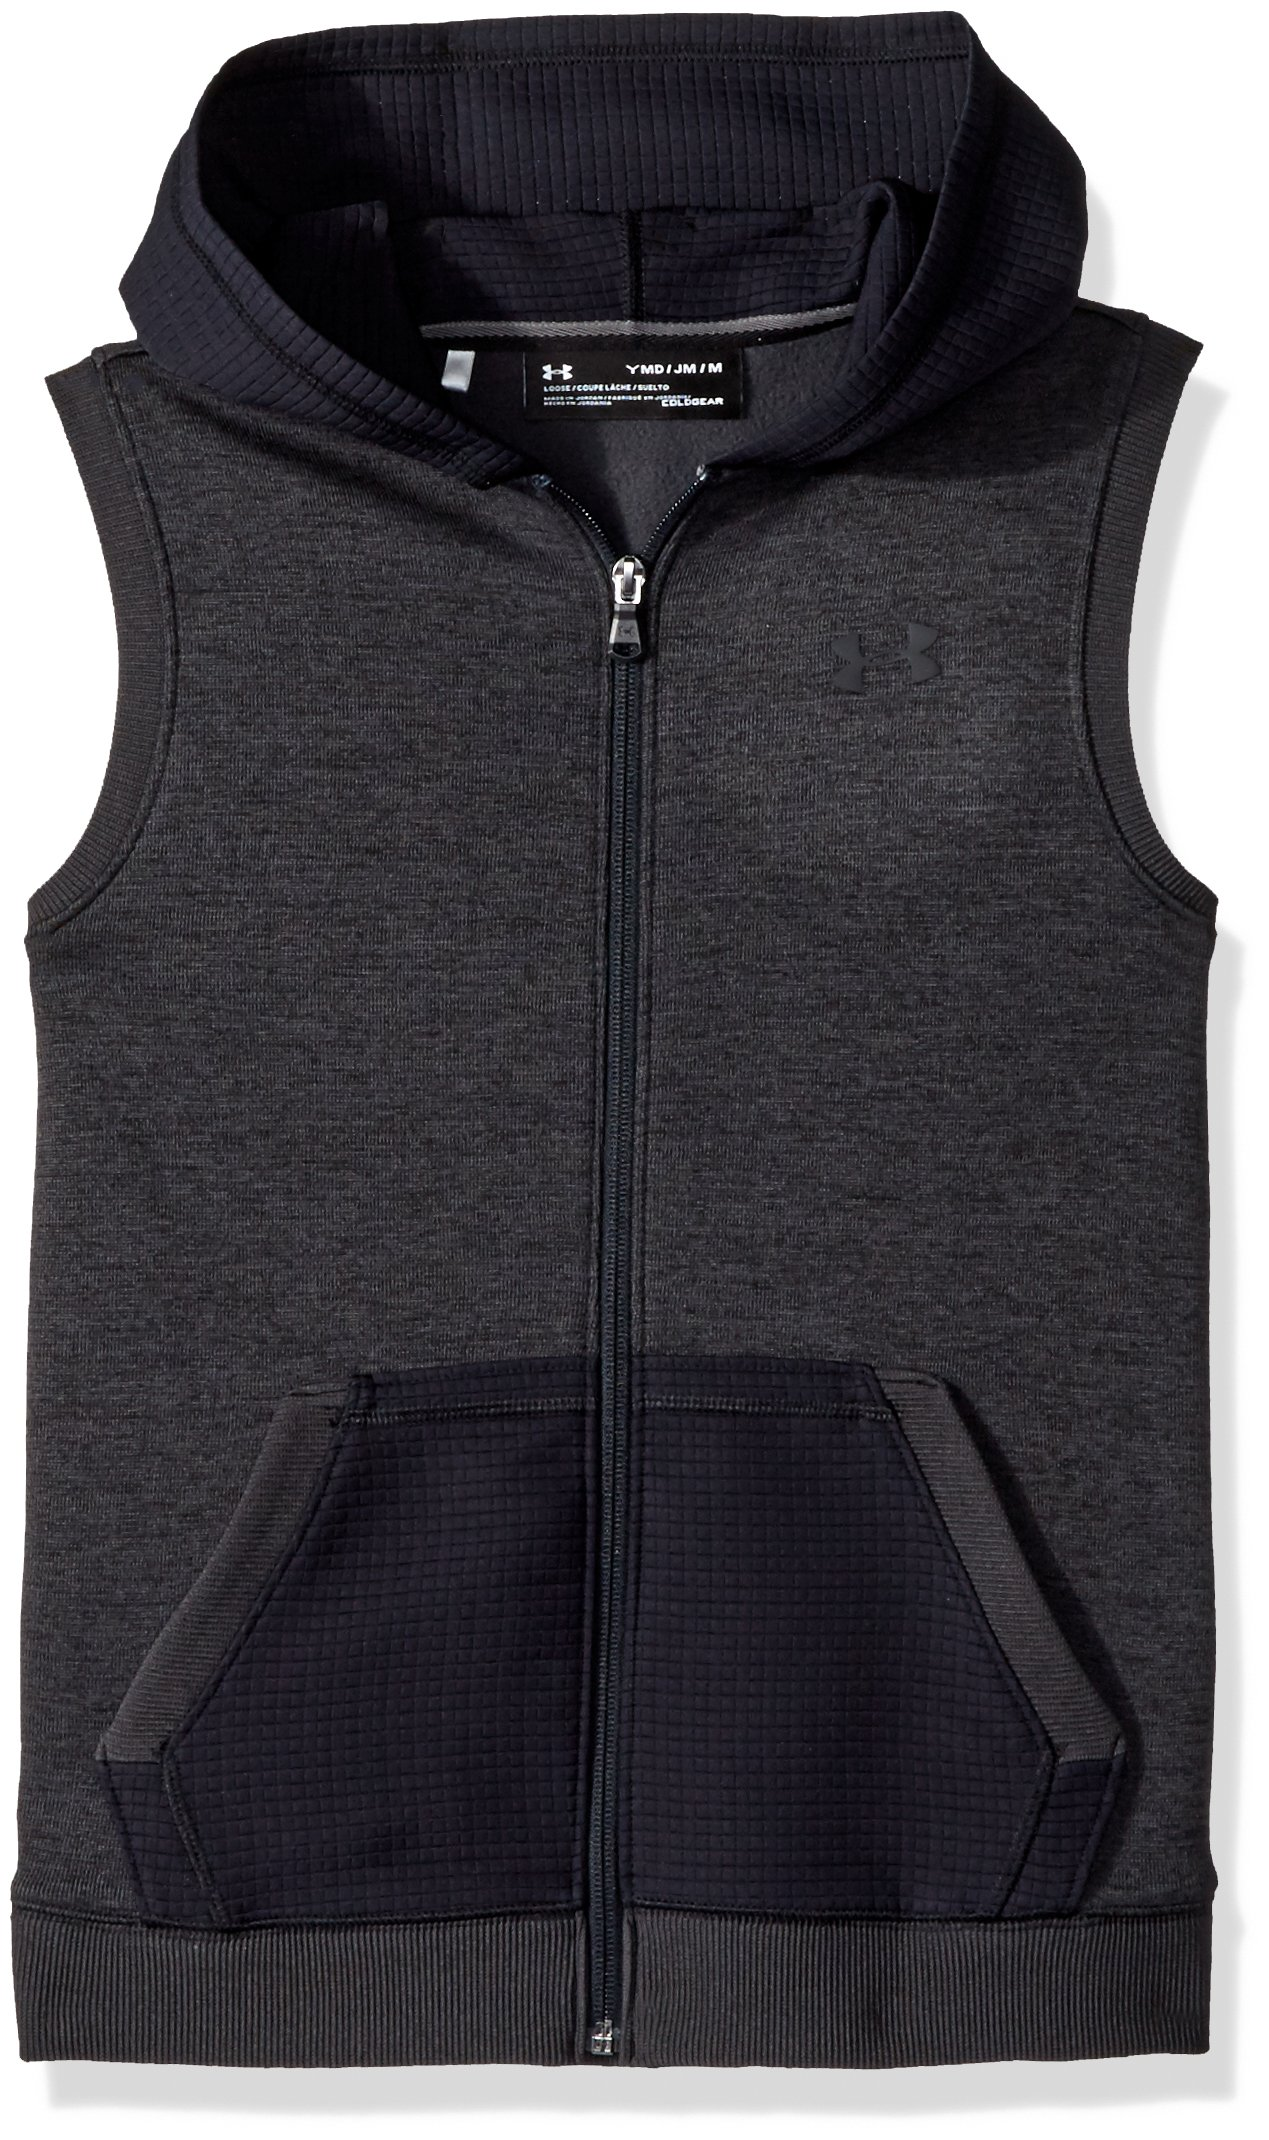 Under Armour Boys' Storm SF Hoodie Vest, Black (001)/Black, Youth Large